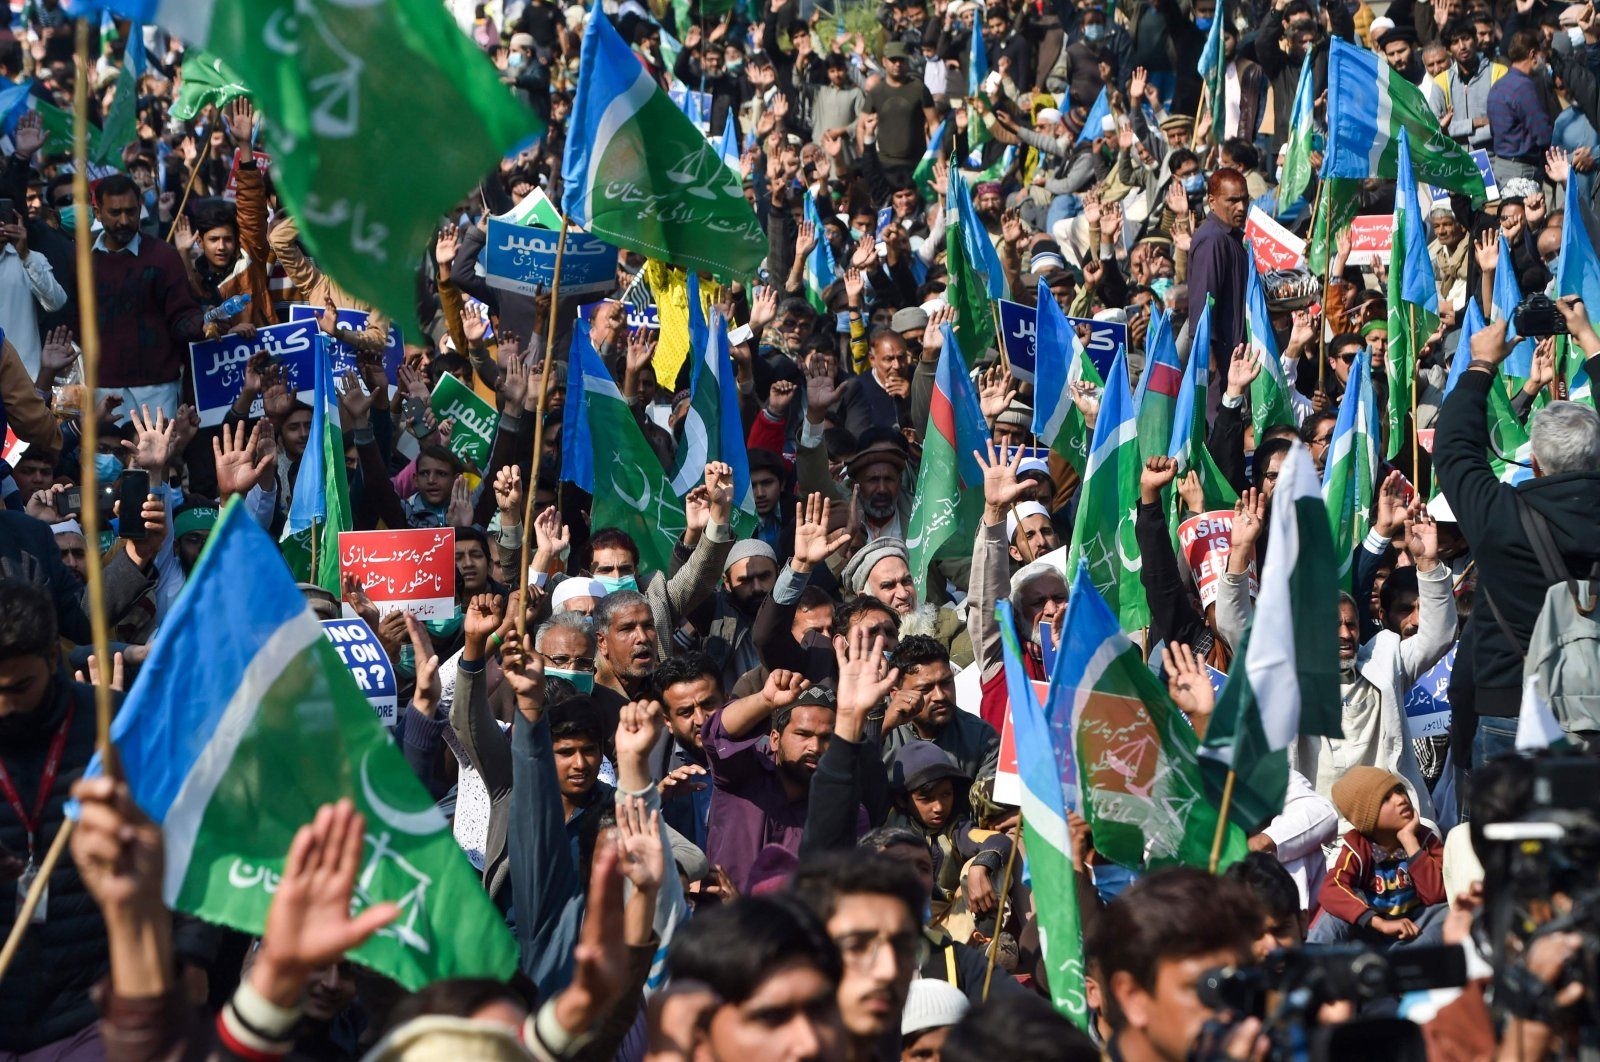 Jamaat-e-Islami (JI) party activists and supporters take part in an anti-India demonstration to mark Kashmir Solidarity Day in Lahore, Pakistan, Feb. 5, 2021. (AFP Photo)